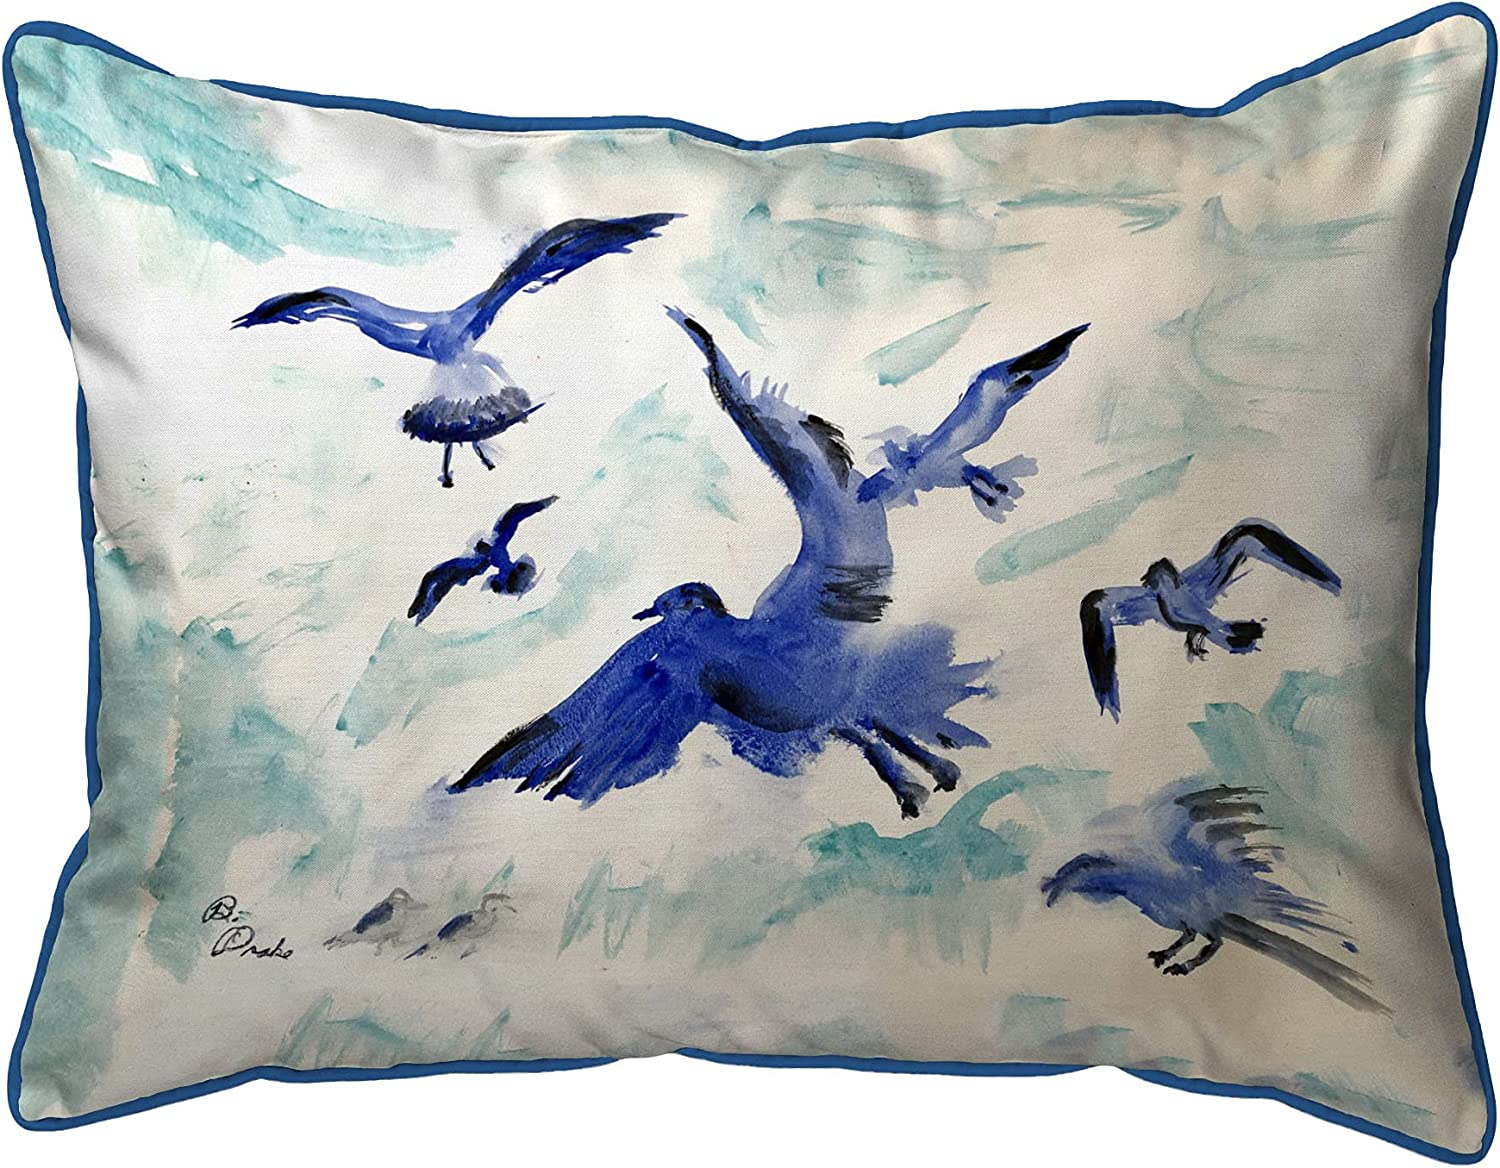 Very popular! Betsy Drake Flocking Gulls Large Indoor 16x20 Pillow Fresno Mall Outdoor